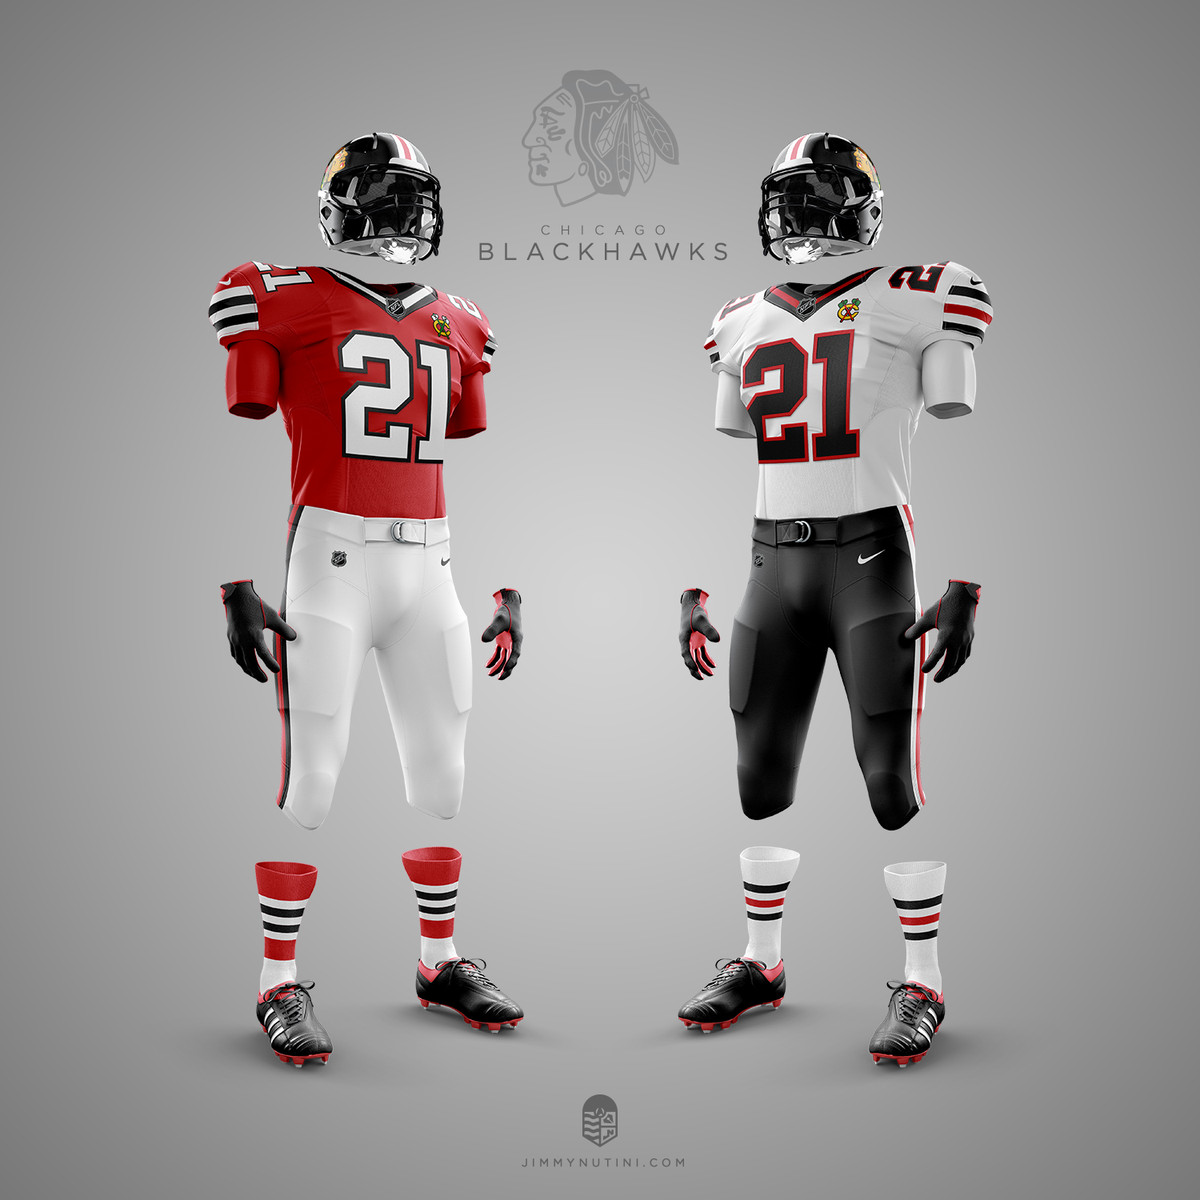 This Blackhawks NFL jersey design kinda makes me wish they played football 26598f291